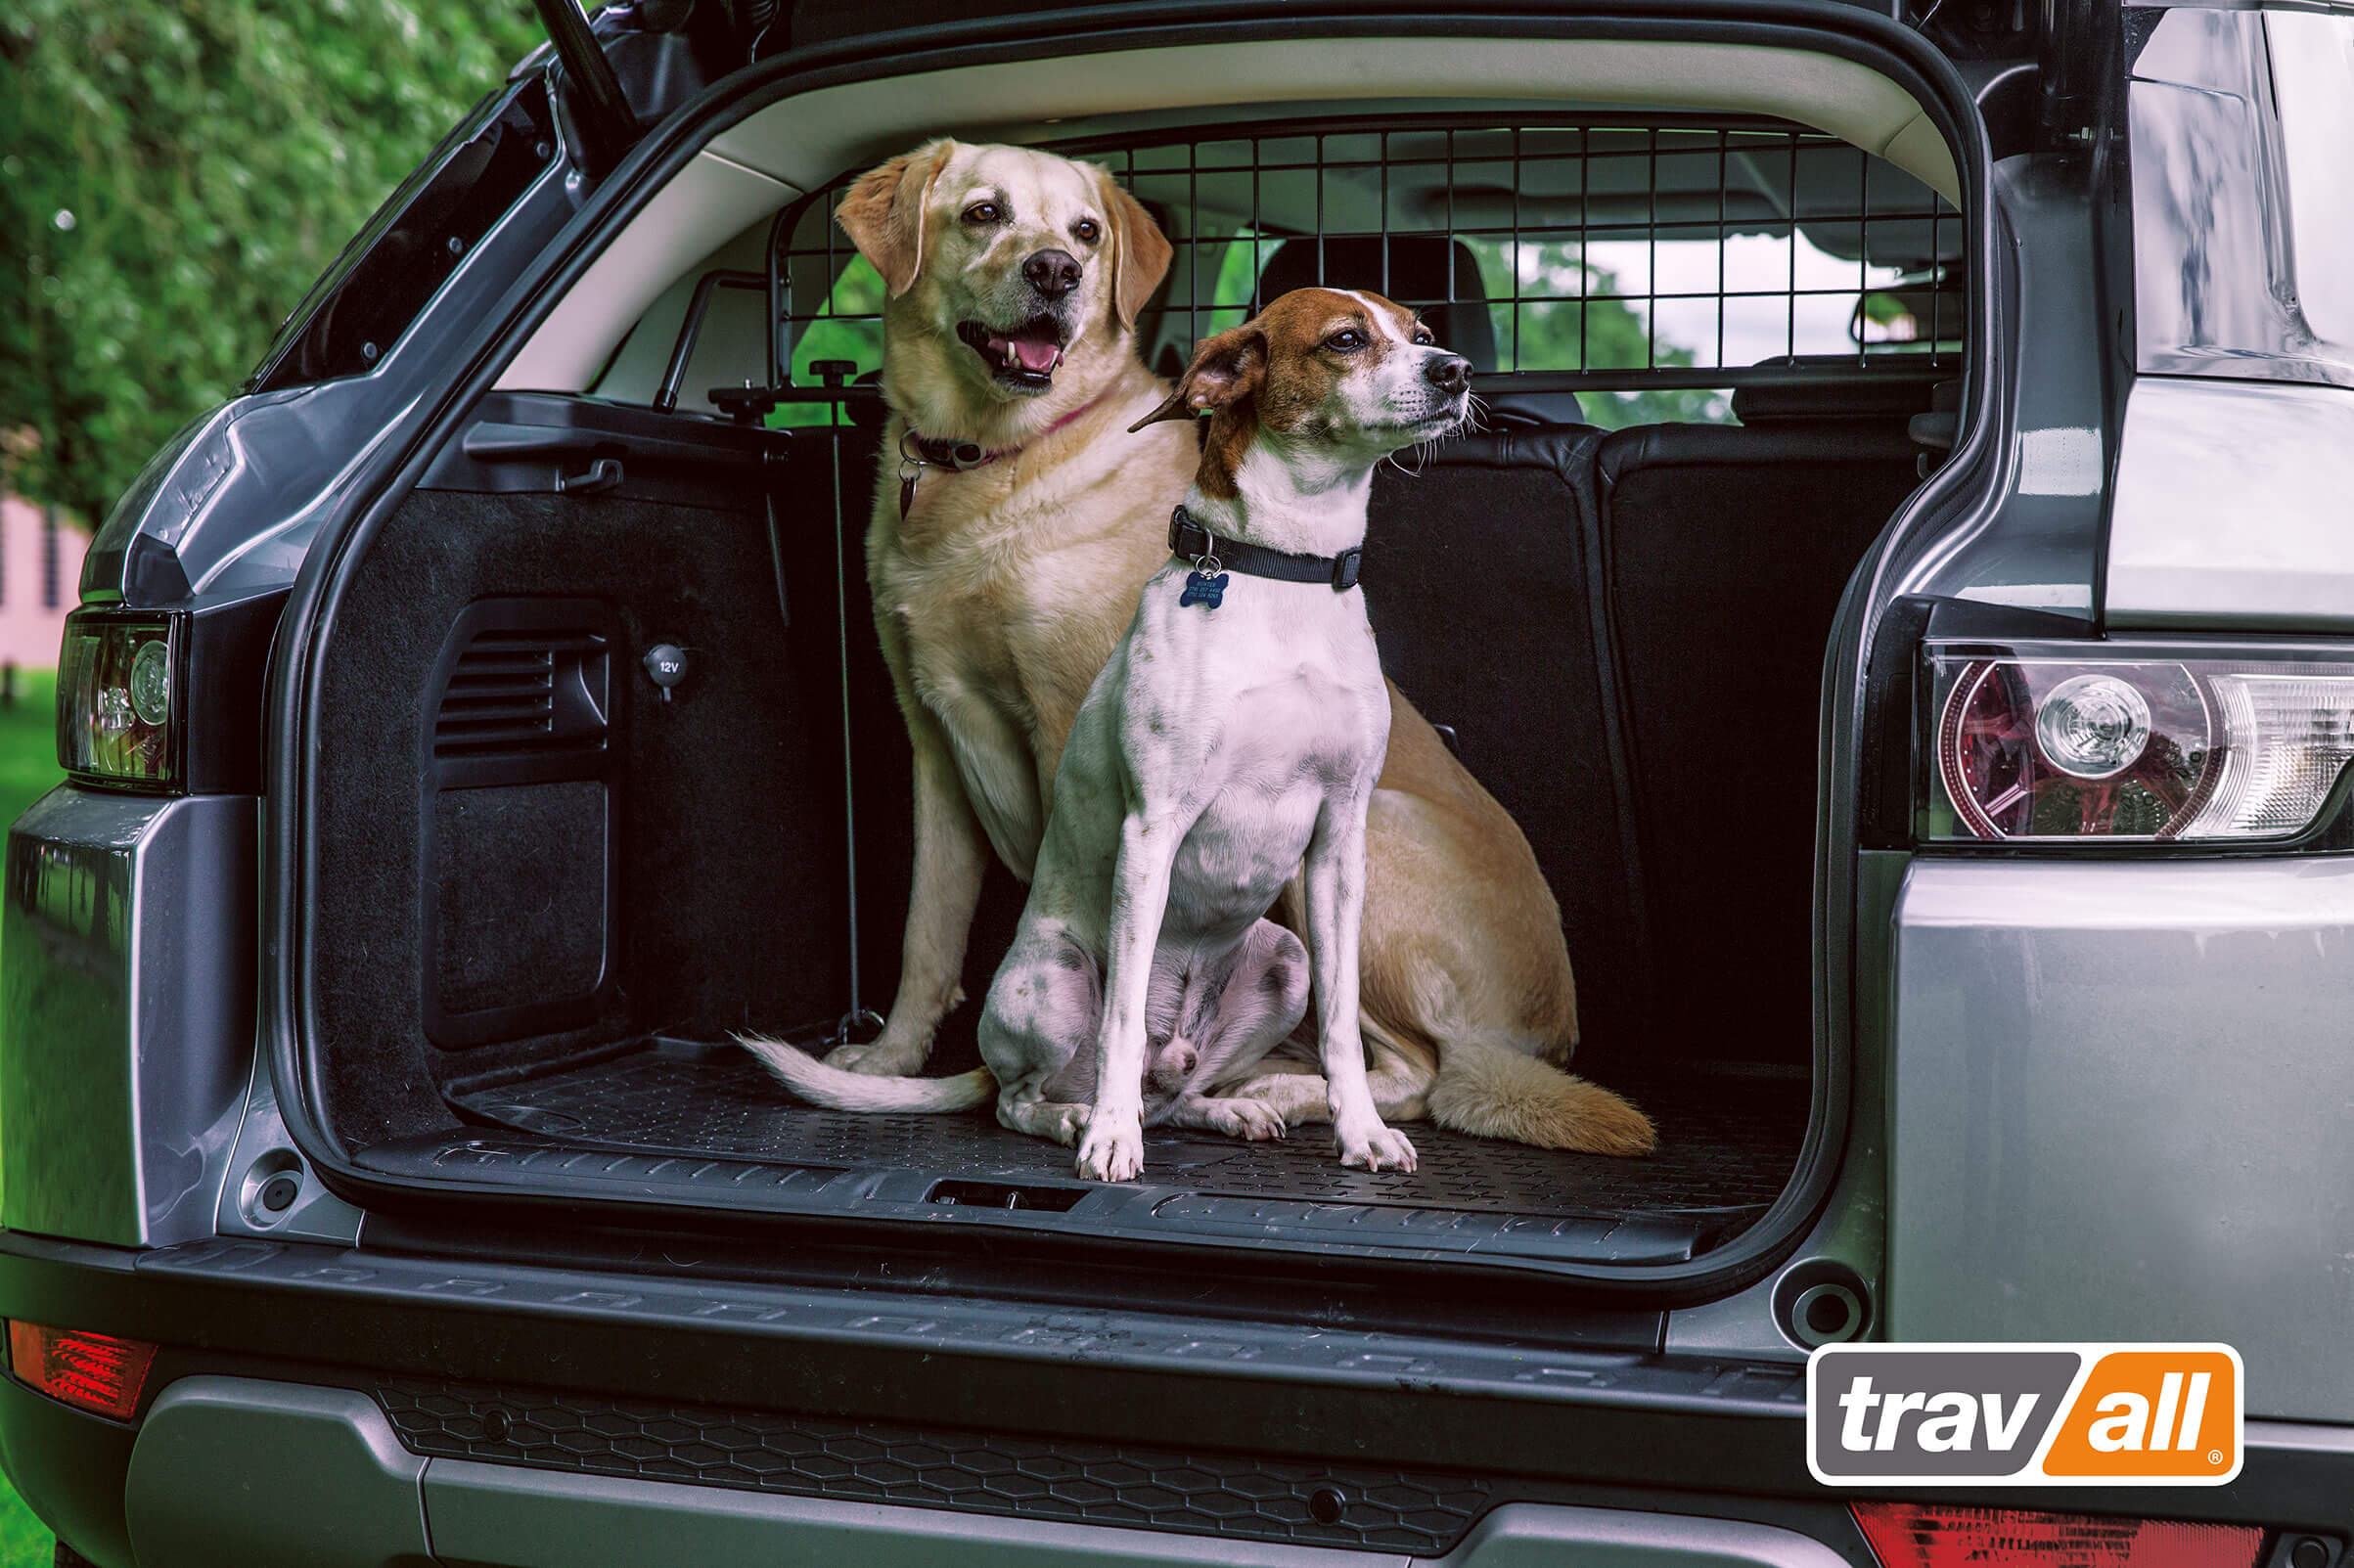 The safety of our pet passengers is an important topic here at Travall. Many of us have our own furry family members and we know that our customers have pets as our Travall Guard can be purchased as a protective car accessory. Tomorrow, January 2, is Pet Passenger Safety Day and in honor of this day we've pulled together a list for pet passenger safety, some of these tips are for people who don't currently use a Travall Guard. Passenger side only When you're walking your dog to get in the car and you park on the street, make sure you enter on the passenger side of the vehicle. The same goes for exiting. You want to make sure they aren't getting in and out of the car on the side that faces traffic. No lap dogs! It's not safe to drive with your pet on your lap. Even having them riding in the front seat is dangerous for them. In the event of an accident or sudden stop, they could be injured by the passenger airbag, ejected through the windshield or could distract you from driving by asking for attention or moving around the car. Be cautious of electric windows If you open the window for your dog to put their nose or head out always remember to put on the window locks! Your dog could move their feet and accidentally close the window on themselves which would cause injury or worse. I can't be more serious about this, as I've had a window start rolling up on my dog and it's quite scary! Secure your woof One of the most important things to do when traveling in the car with your pet is to secure your dog. Whether that's with a doggy seatbelt harness, a dog crate or a pet barrier, you'll be happy that you did if the unthinkable happens. We, of course, suggest a Travall Guard. They're vehicle specific, quick and easy to install and have a Limited Lifetime Warranty. So not only will they last for the life of your vehicle, you'll be able to install yours at home with your own two hands. This January, and every other month, remember to take make all the right choices for protecting your pet in and out of your home. They'll love you even more for it.